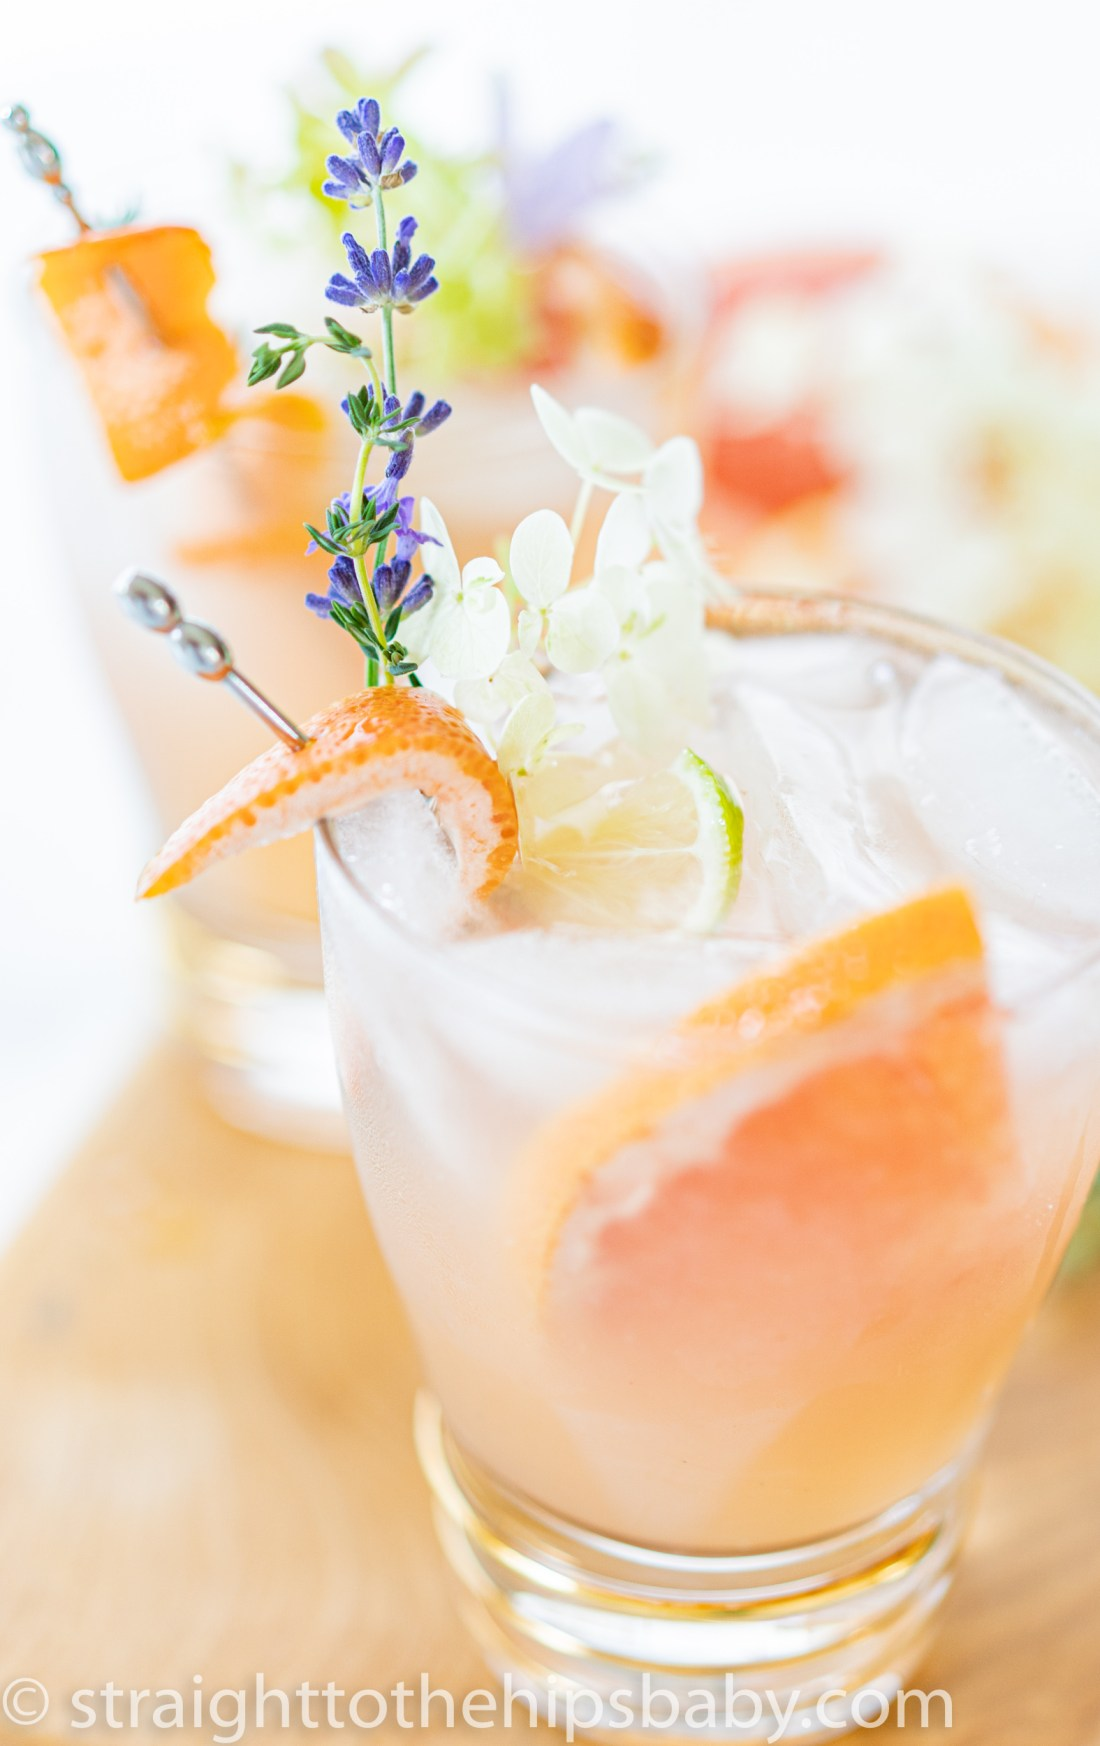 a beautiful light pink grapefruit Paloma tequila cocktail with delicate floral garnish